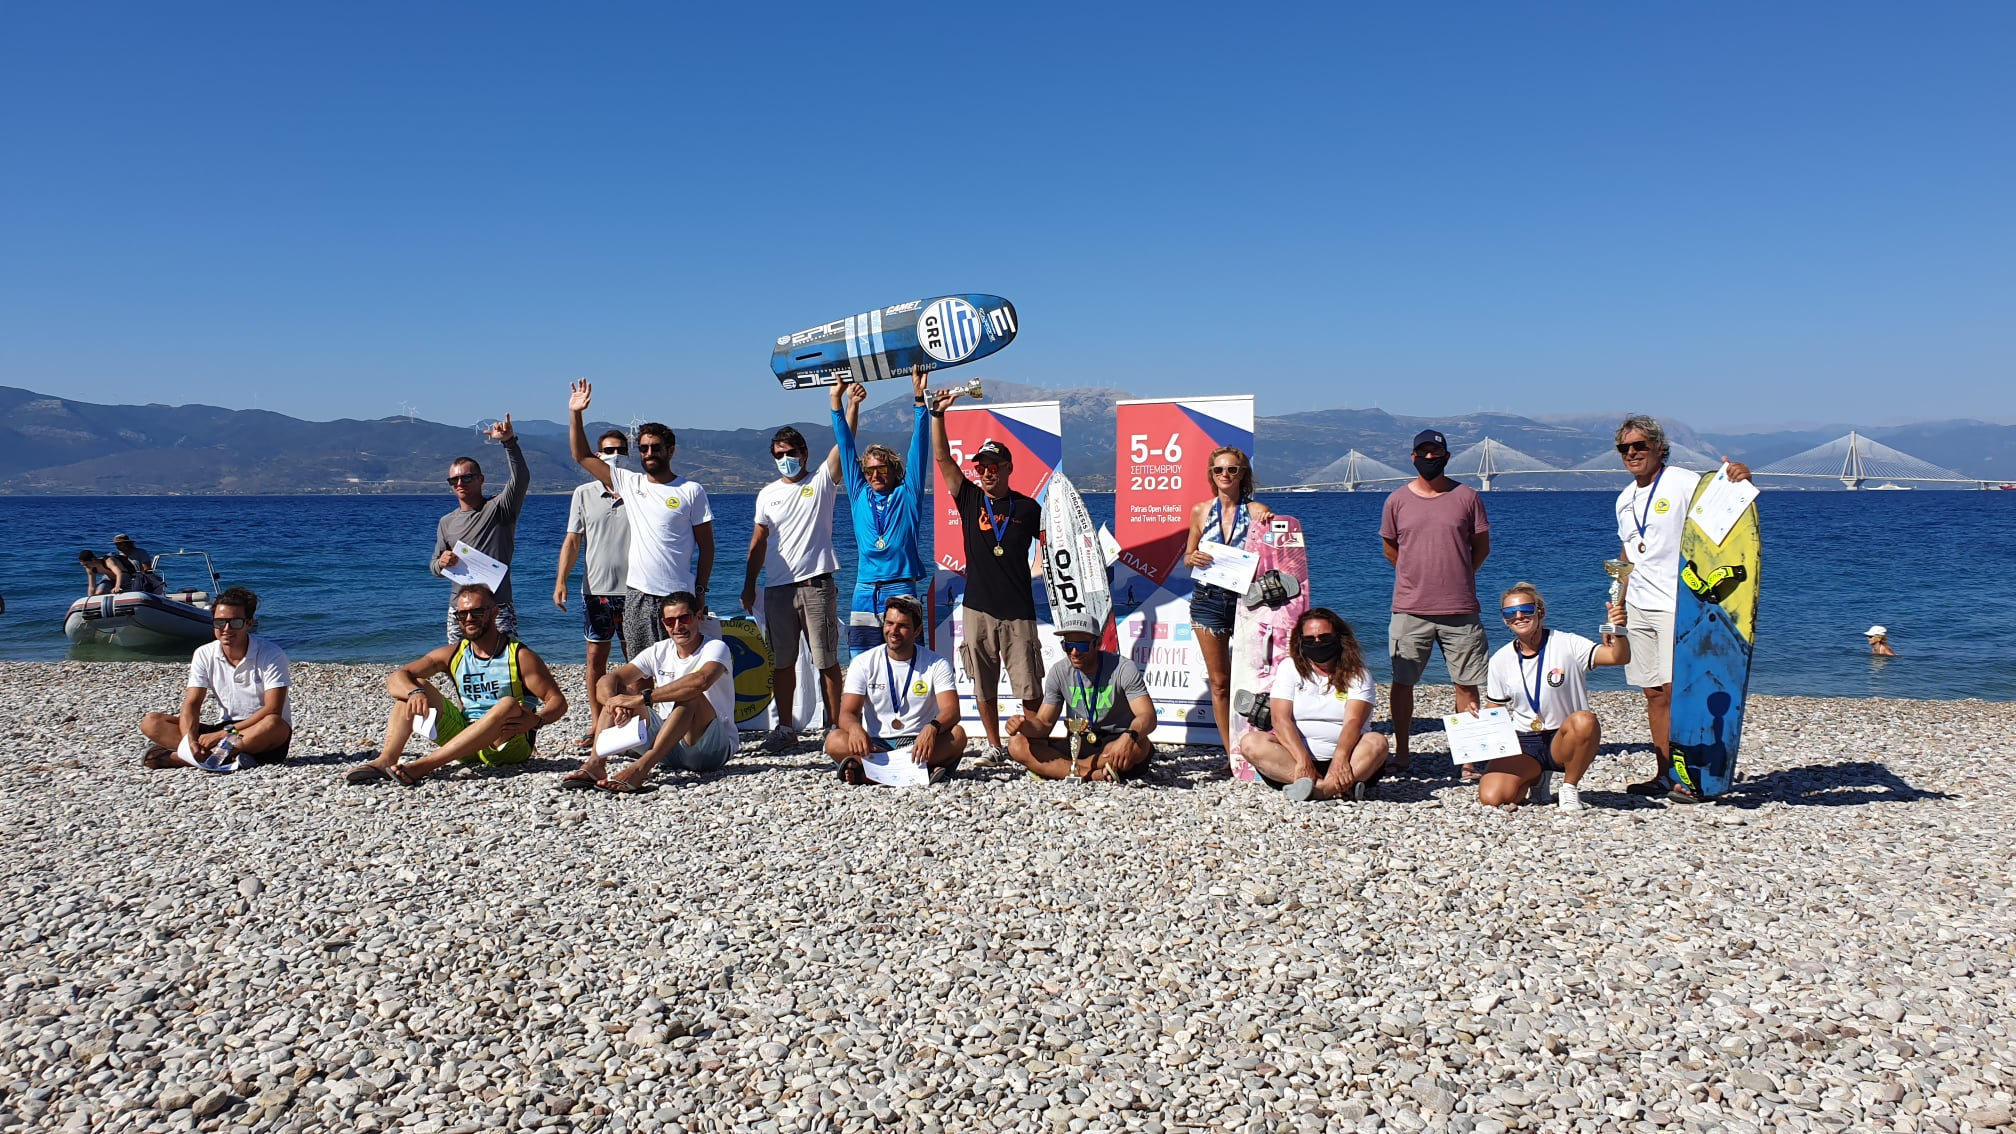 hka-patras-kitefoil-and-twintip-race-2020-028